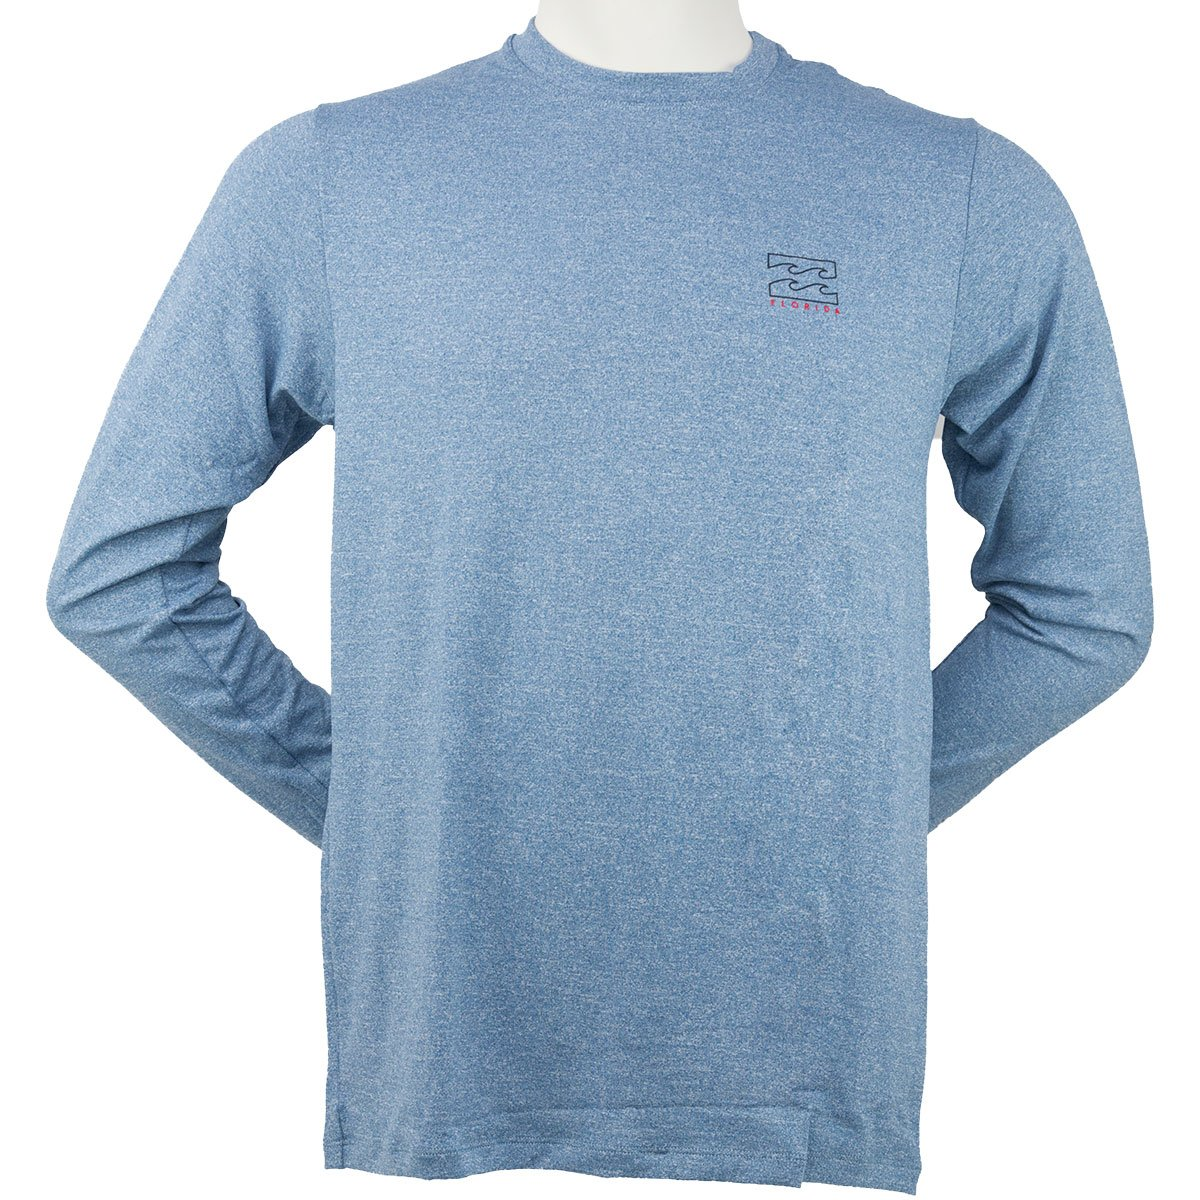 Billabong Florida Native Longsleeve Surf Tee